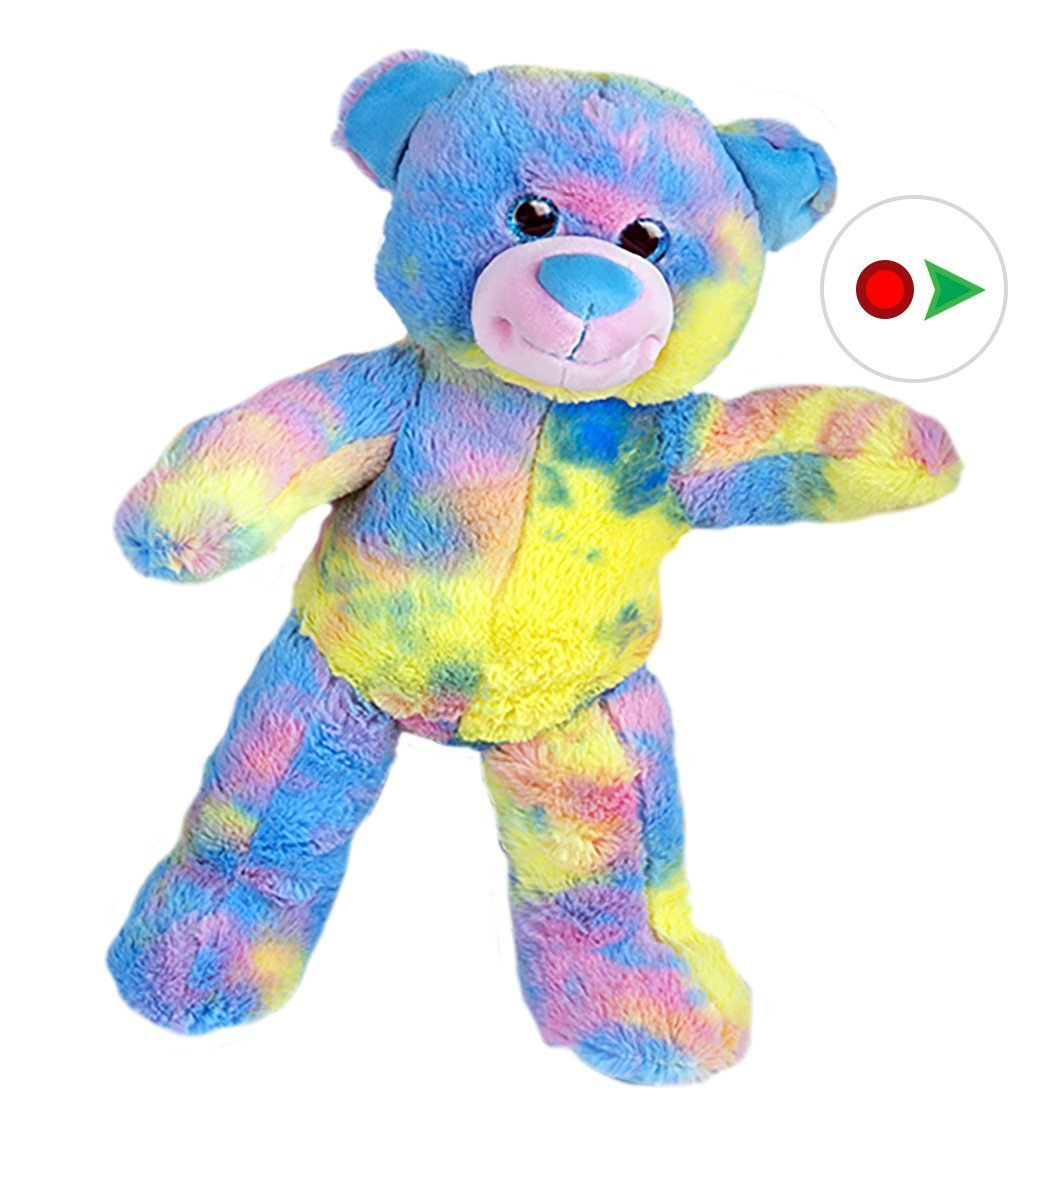 Record Your Own Plush 16 inch Candy Bear Teddy Bear Ready To Love In A Few Easy Steps by Teddy Mountain